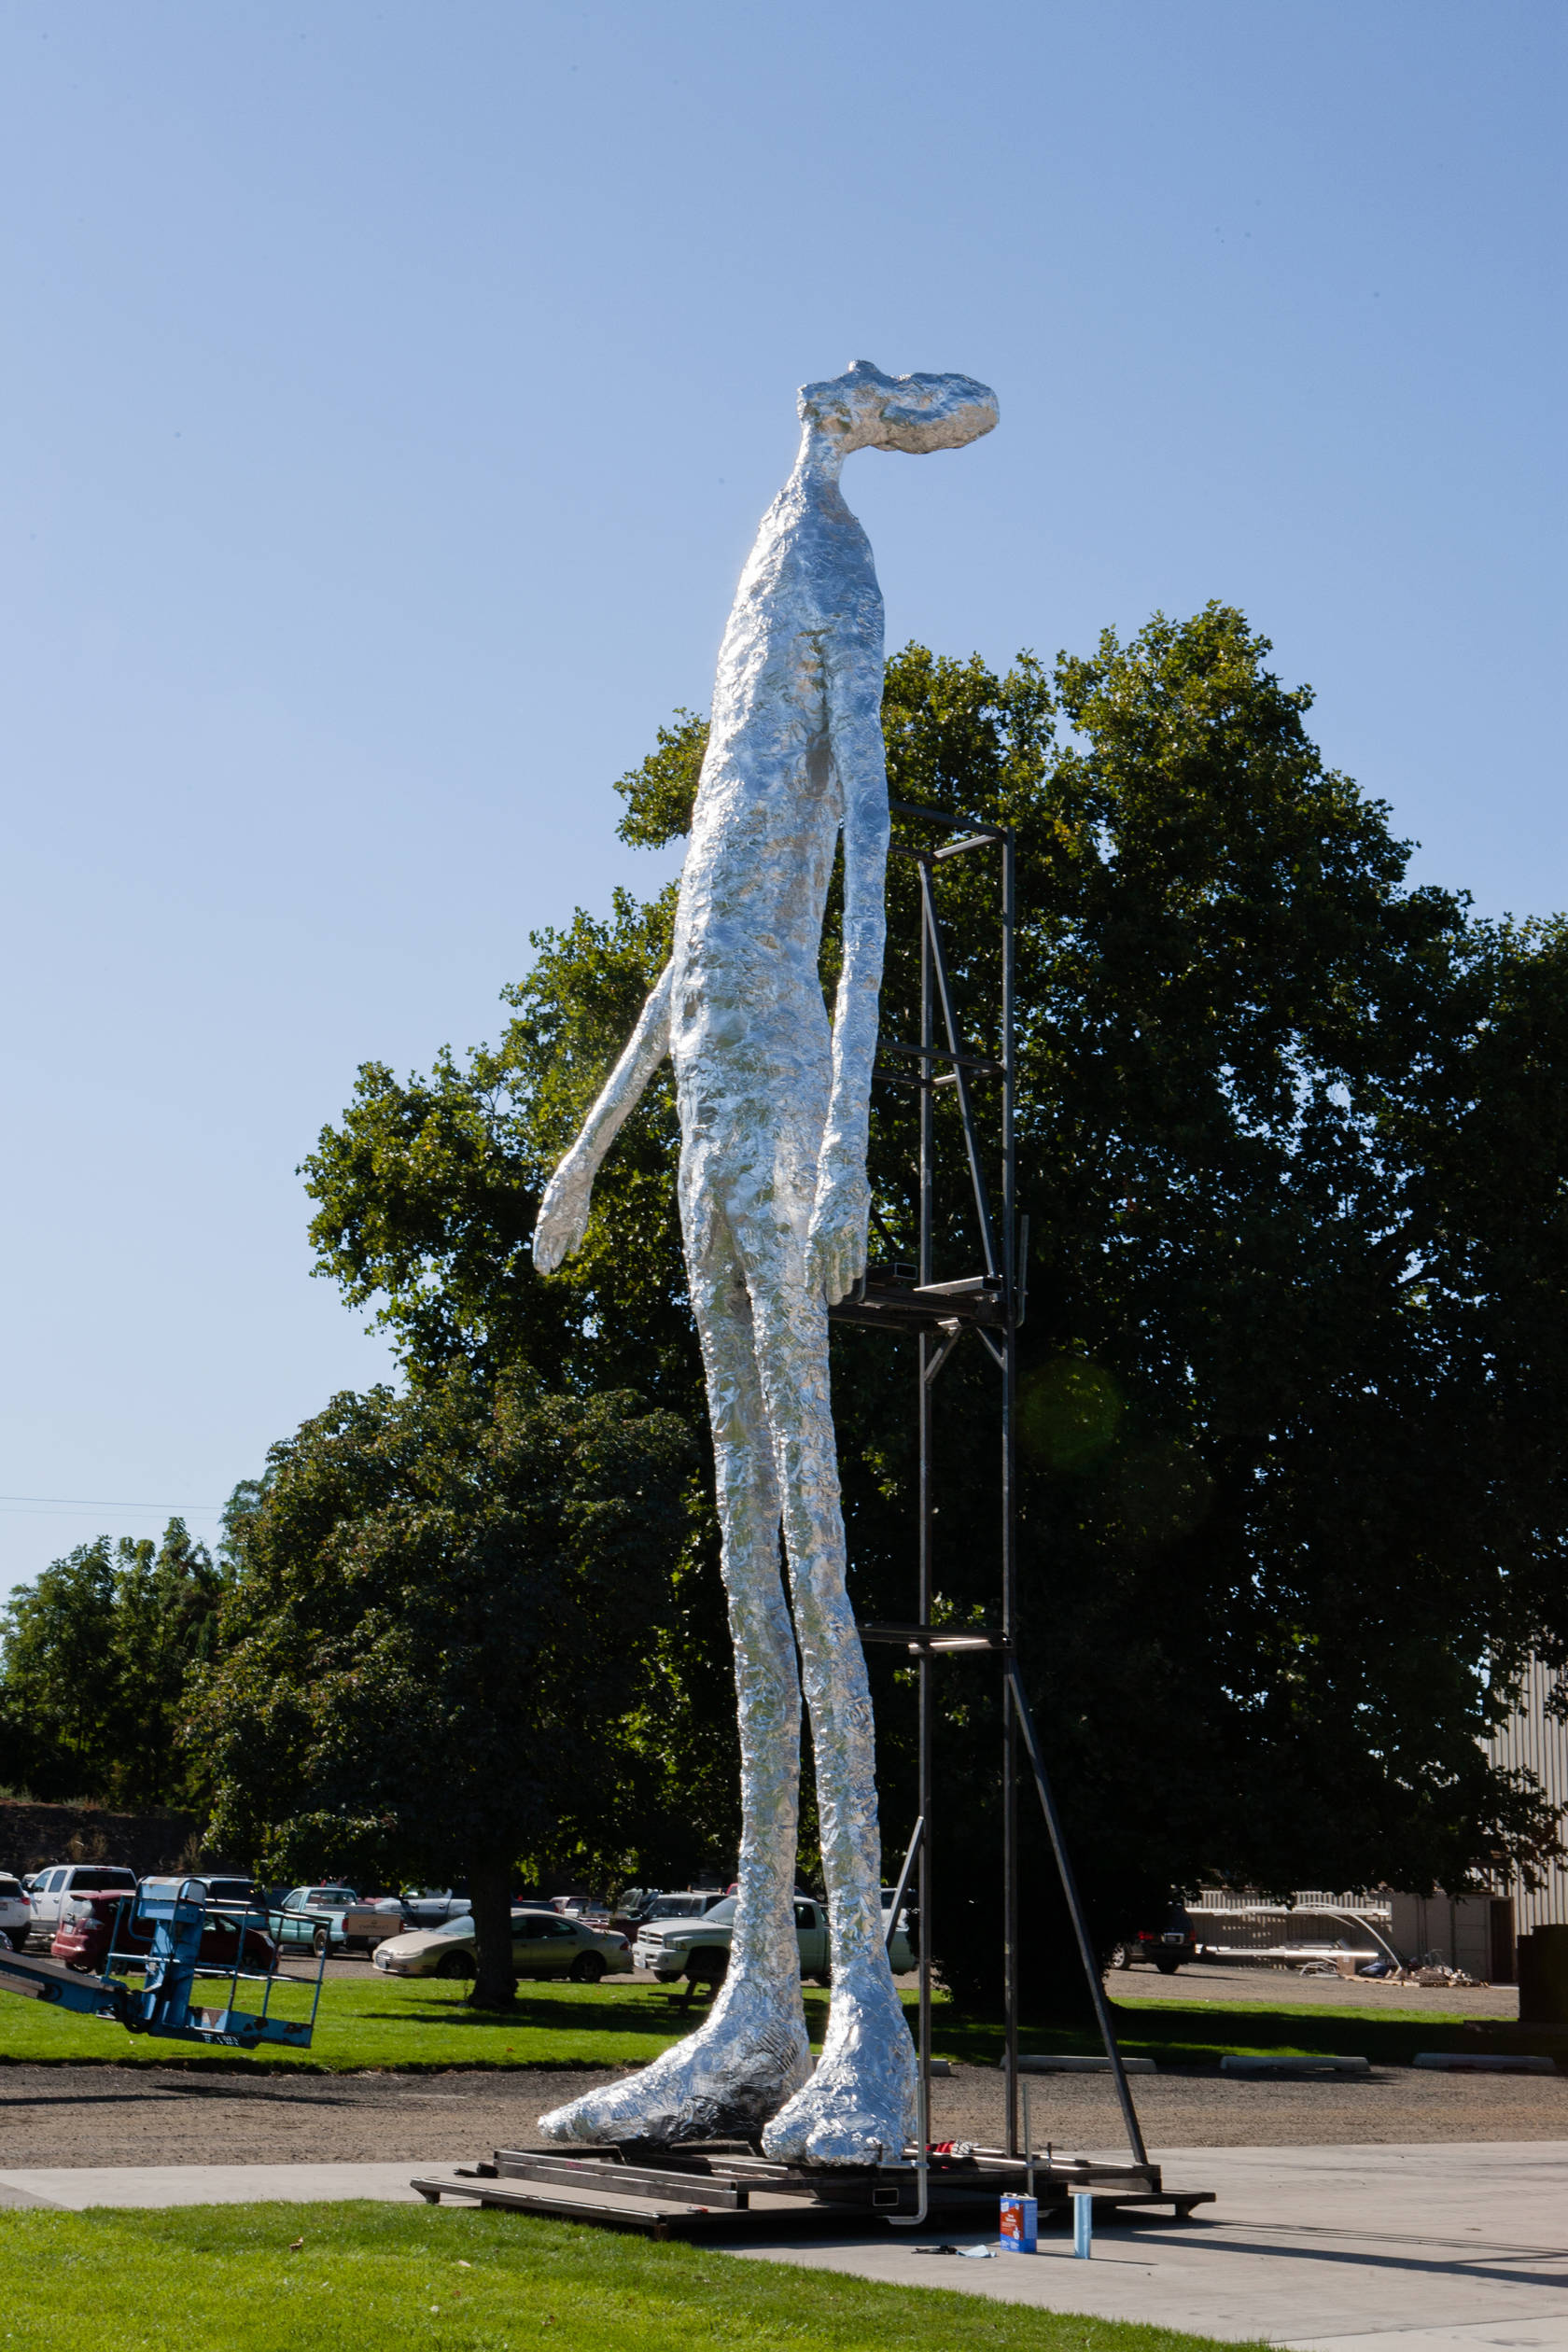 The Contemporary Austin Announces the Acquisition of 33-Foot Stainless Steel Sculpture by Artist Tom Friedman